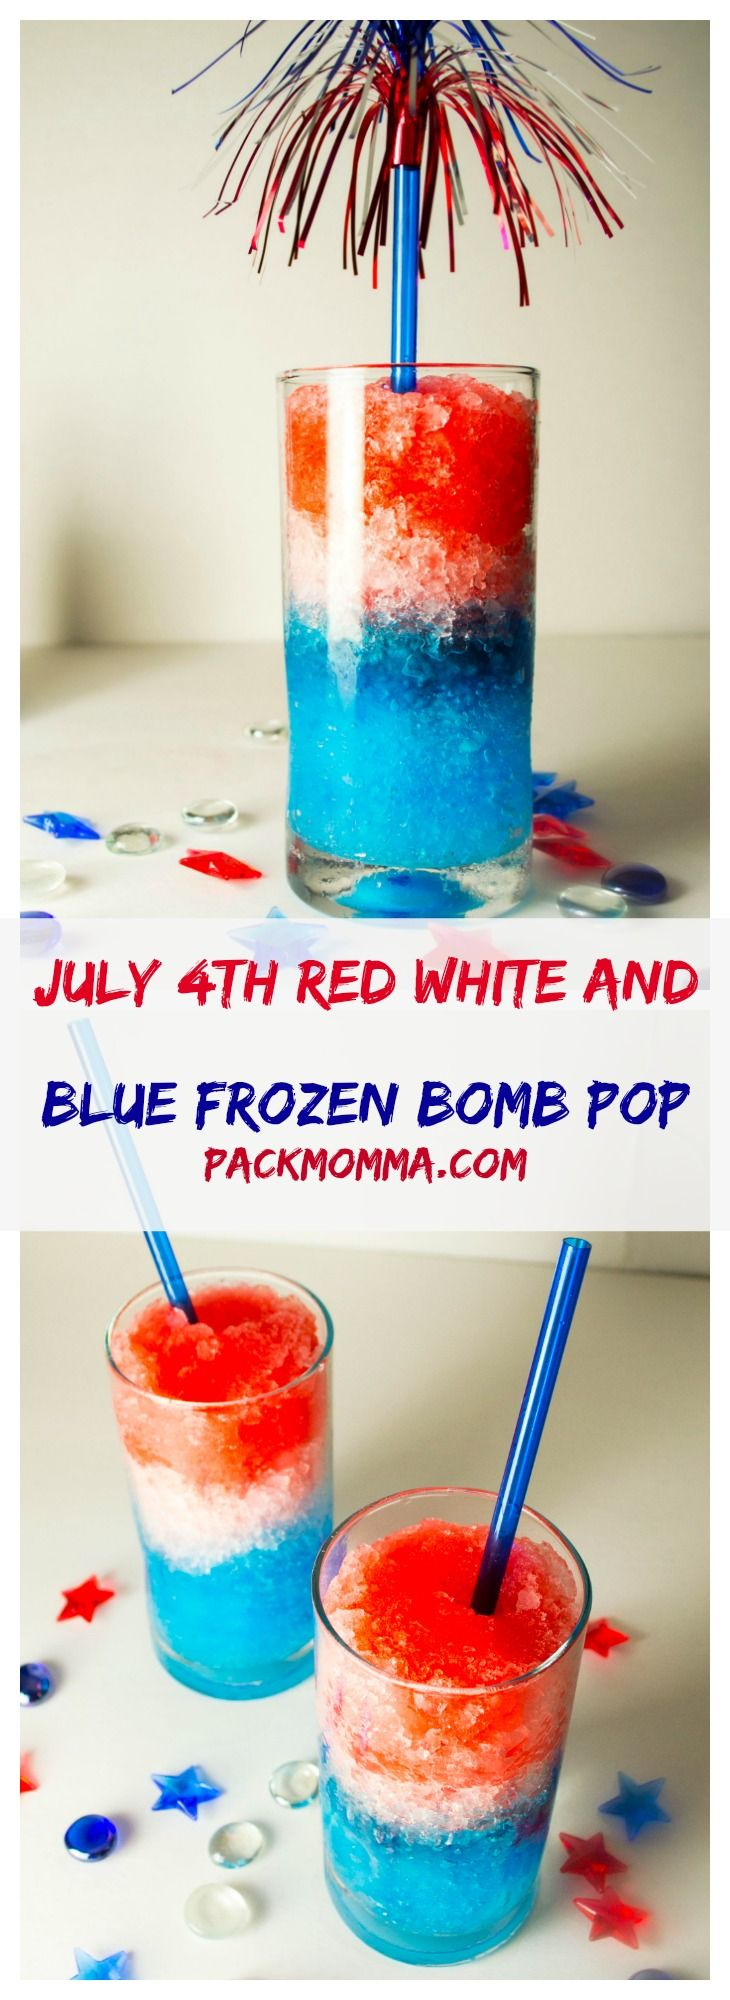 July 4th Red White and Blue Frozen Bomb Pop - Celebrate Independence Day in style this year with these cool and refreshing July 4th Red White and Blue Frozen Bomb Pop drinks. | packmomma.com